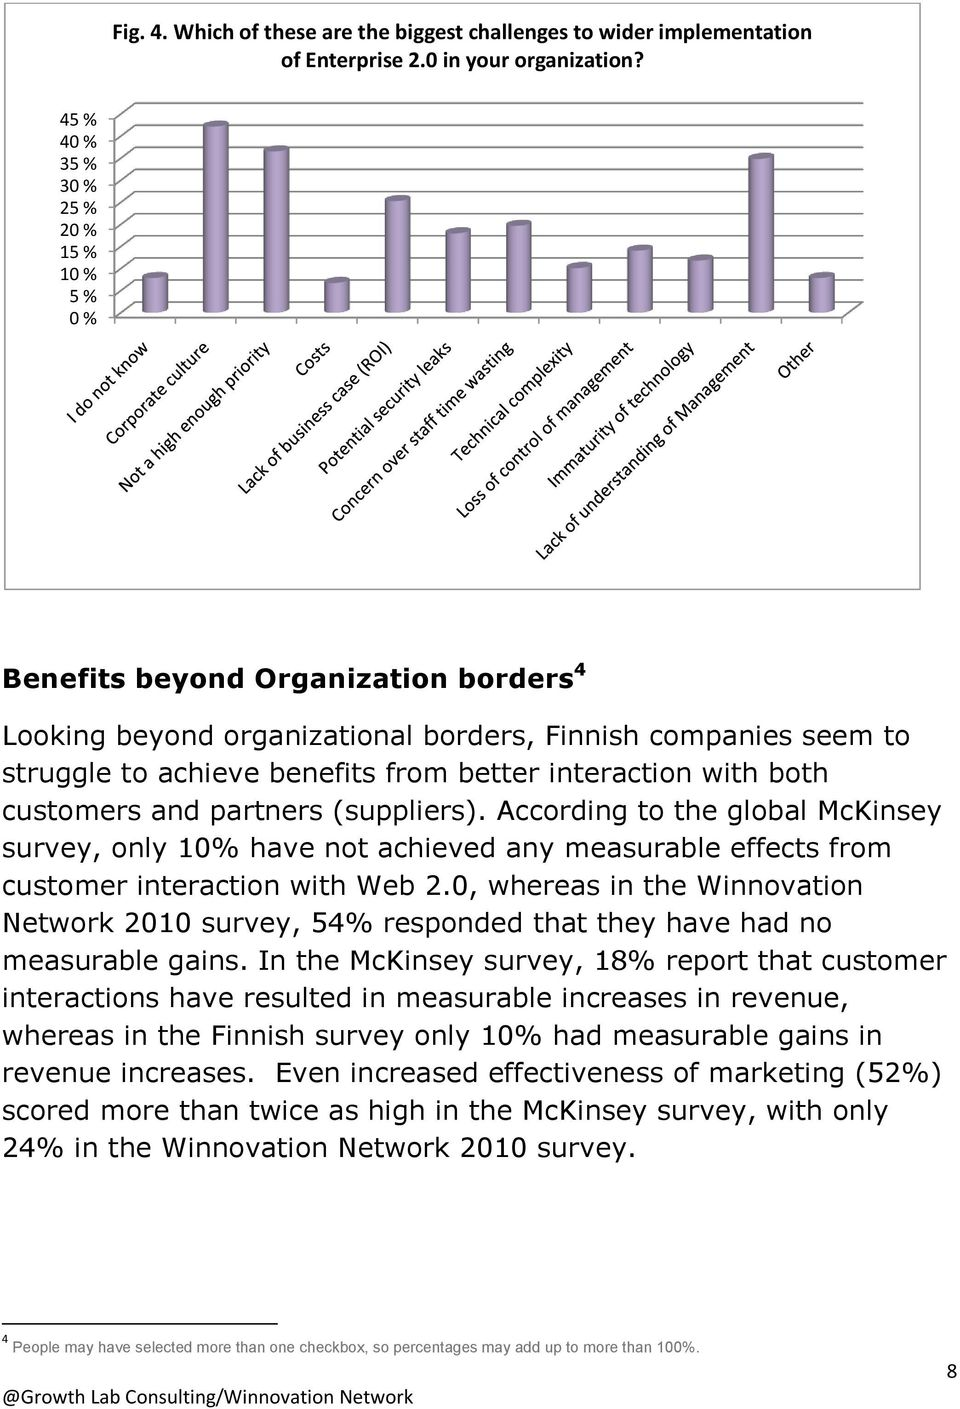 interaction with both customers and partners (suppliers). According to the global McKinsey survey, only 10% have not achieved any measurable effects from customer interaction with Web 2.